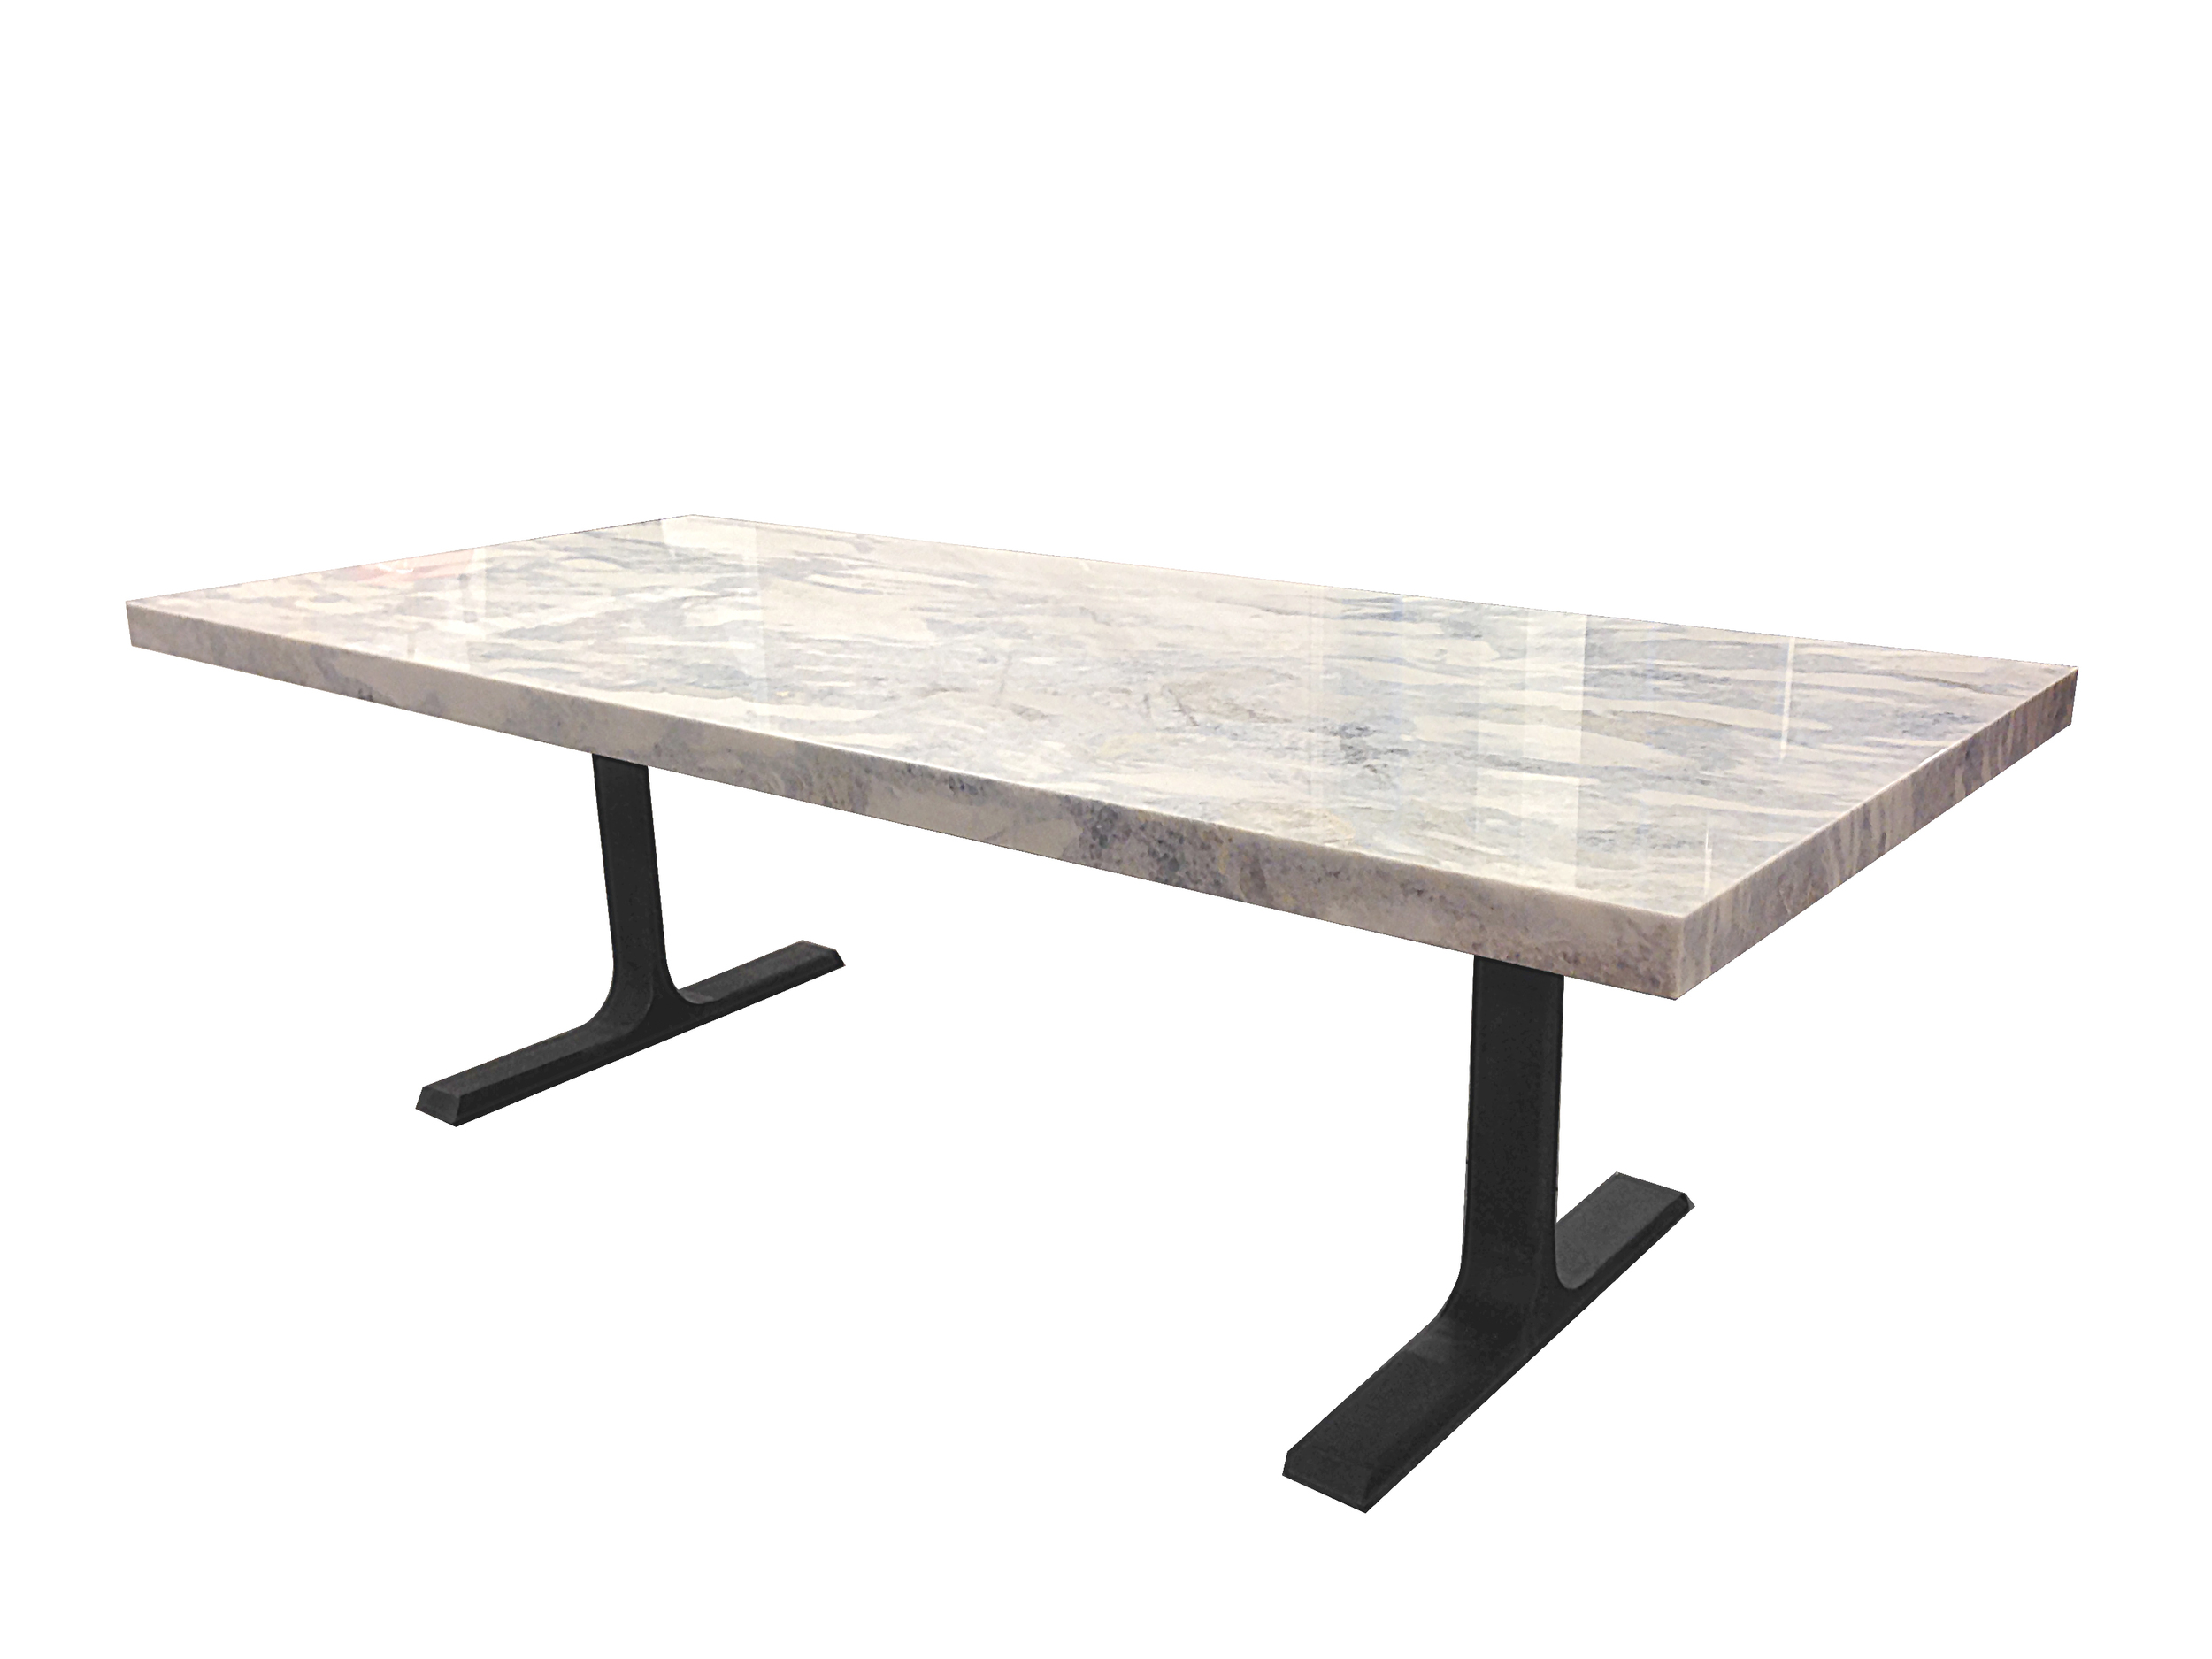 1 Marble and Steel Dining Table.jpg